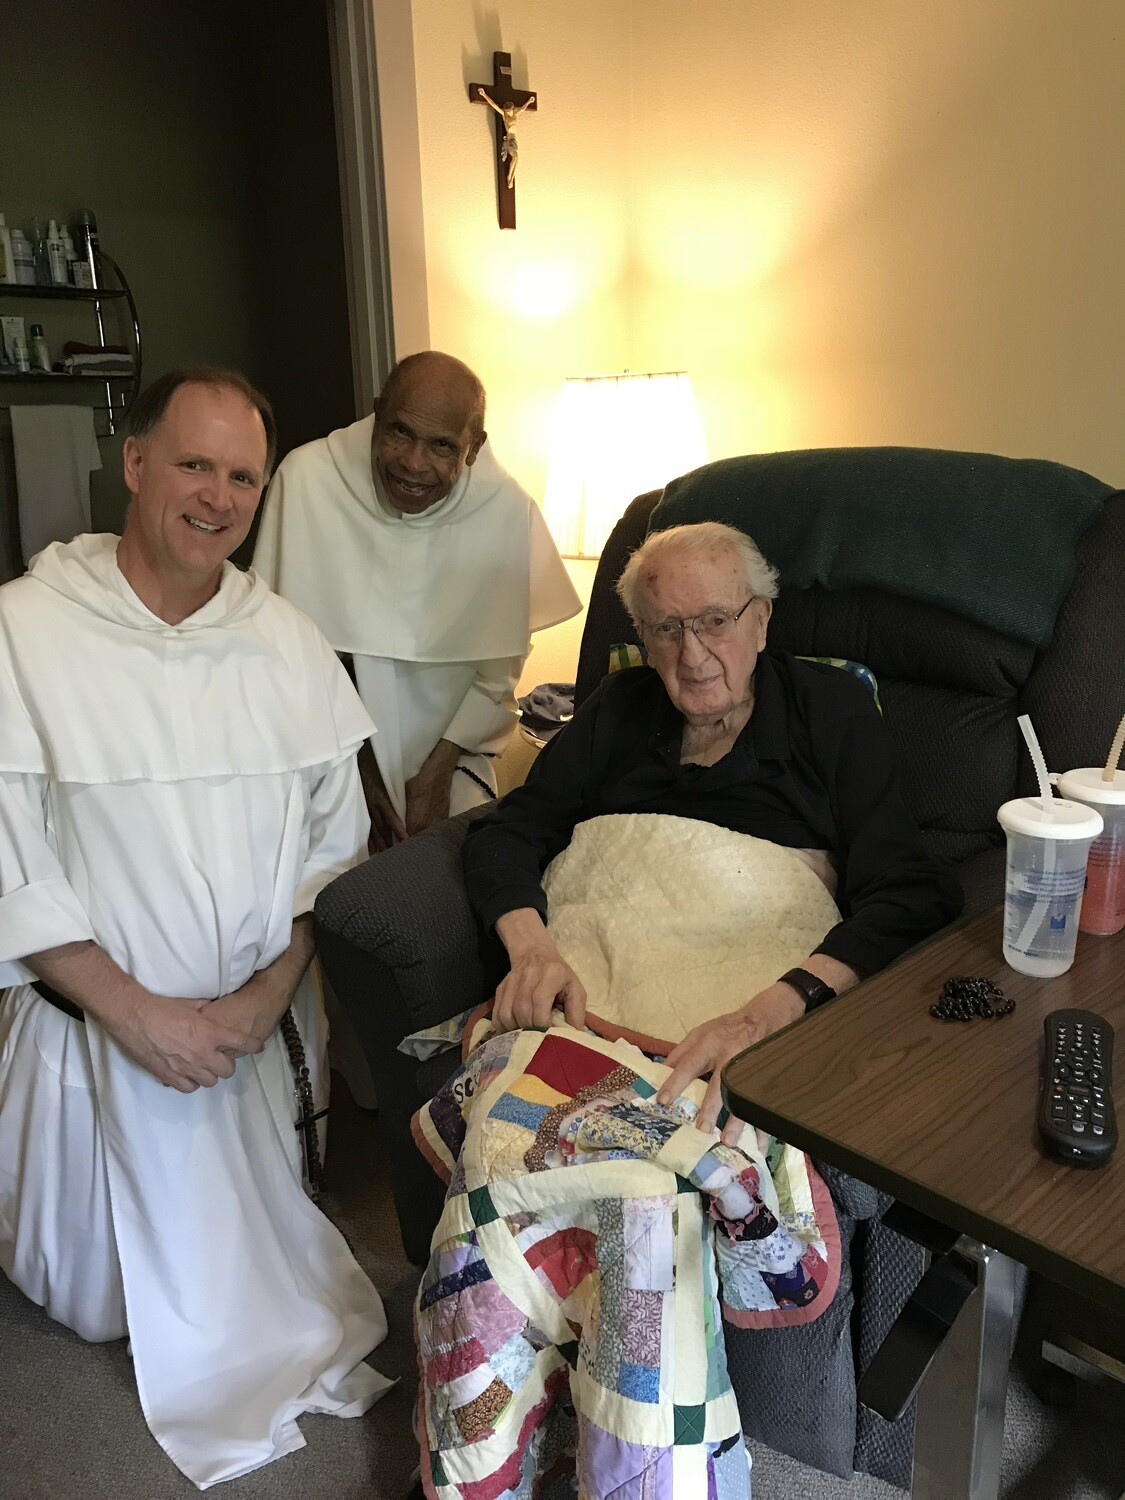 Donate $100,000 for RENOVATION of the Rosary Center